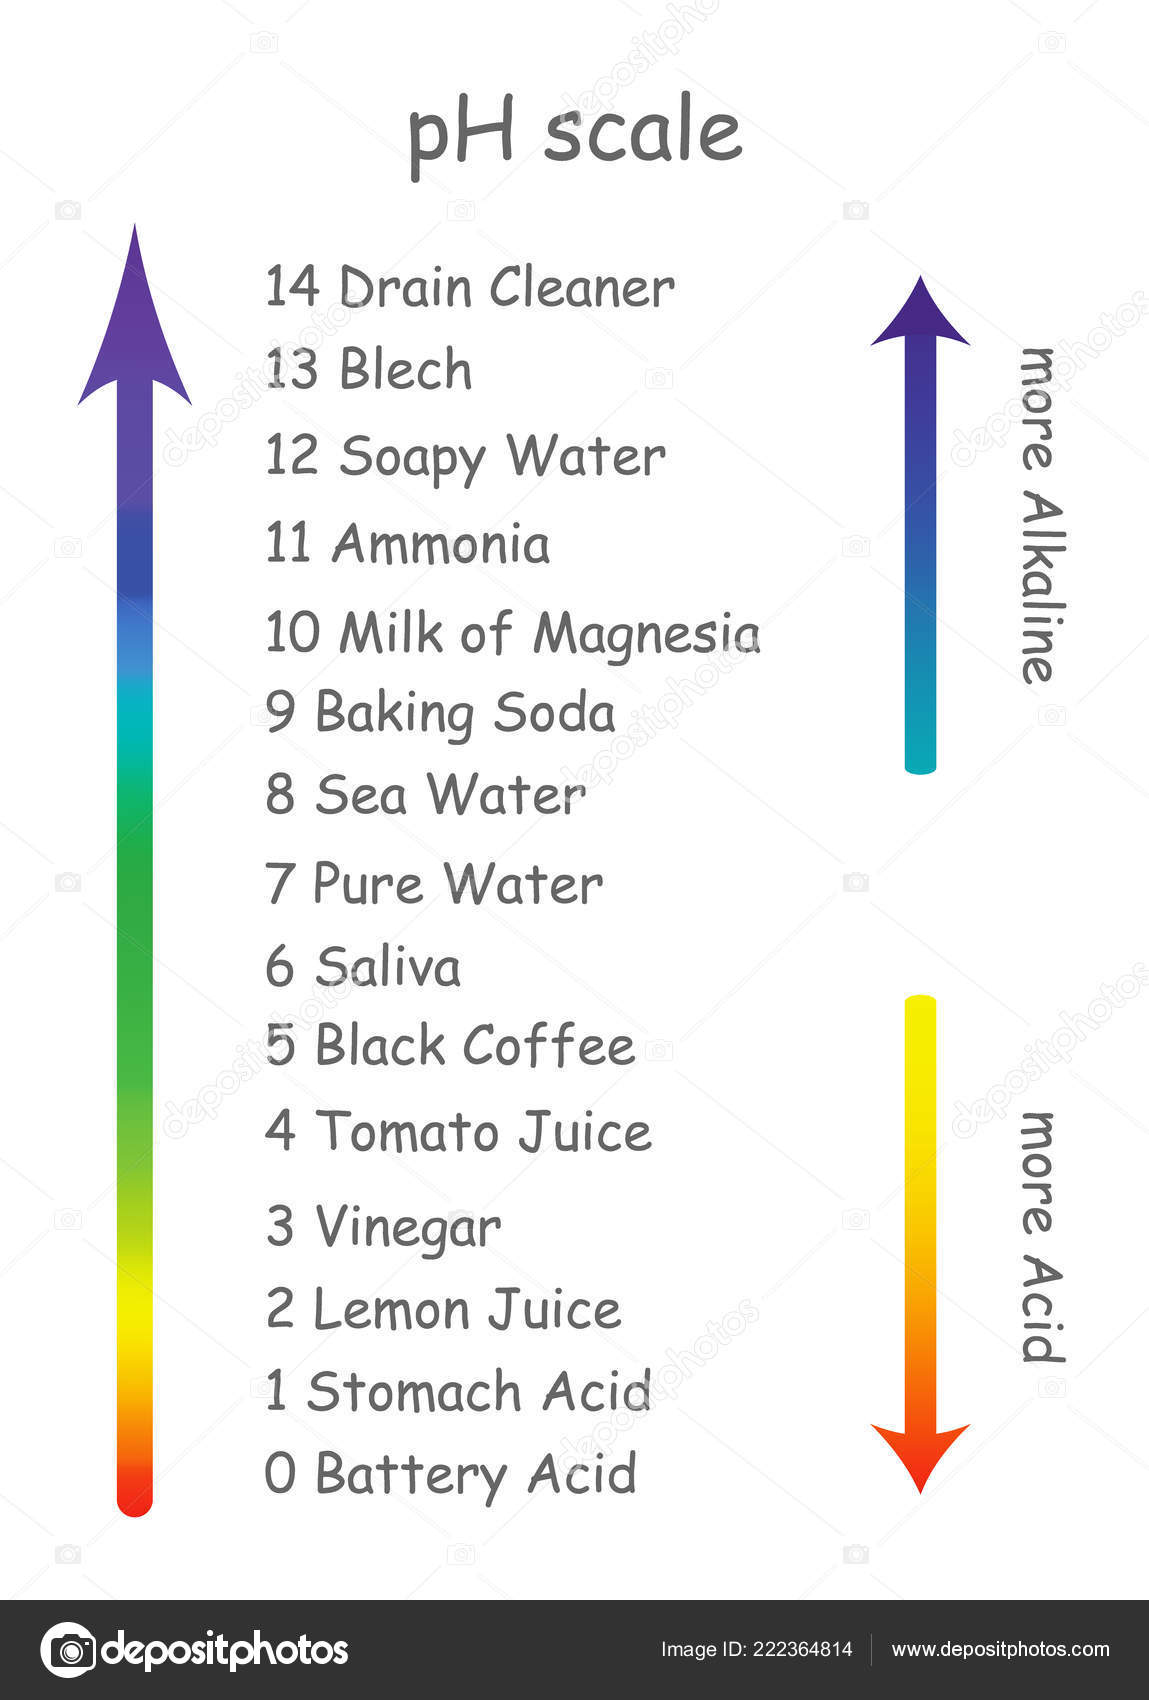 Ph Scale With Product Names With Different Acidity The Scale Is